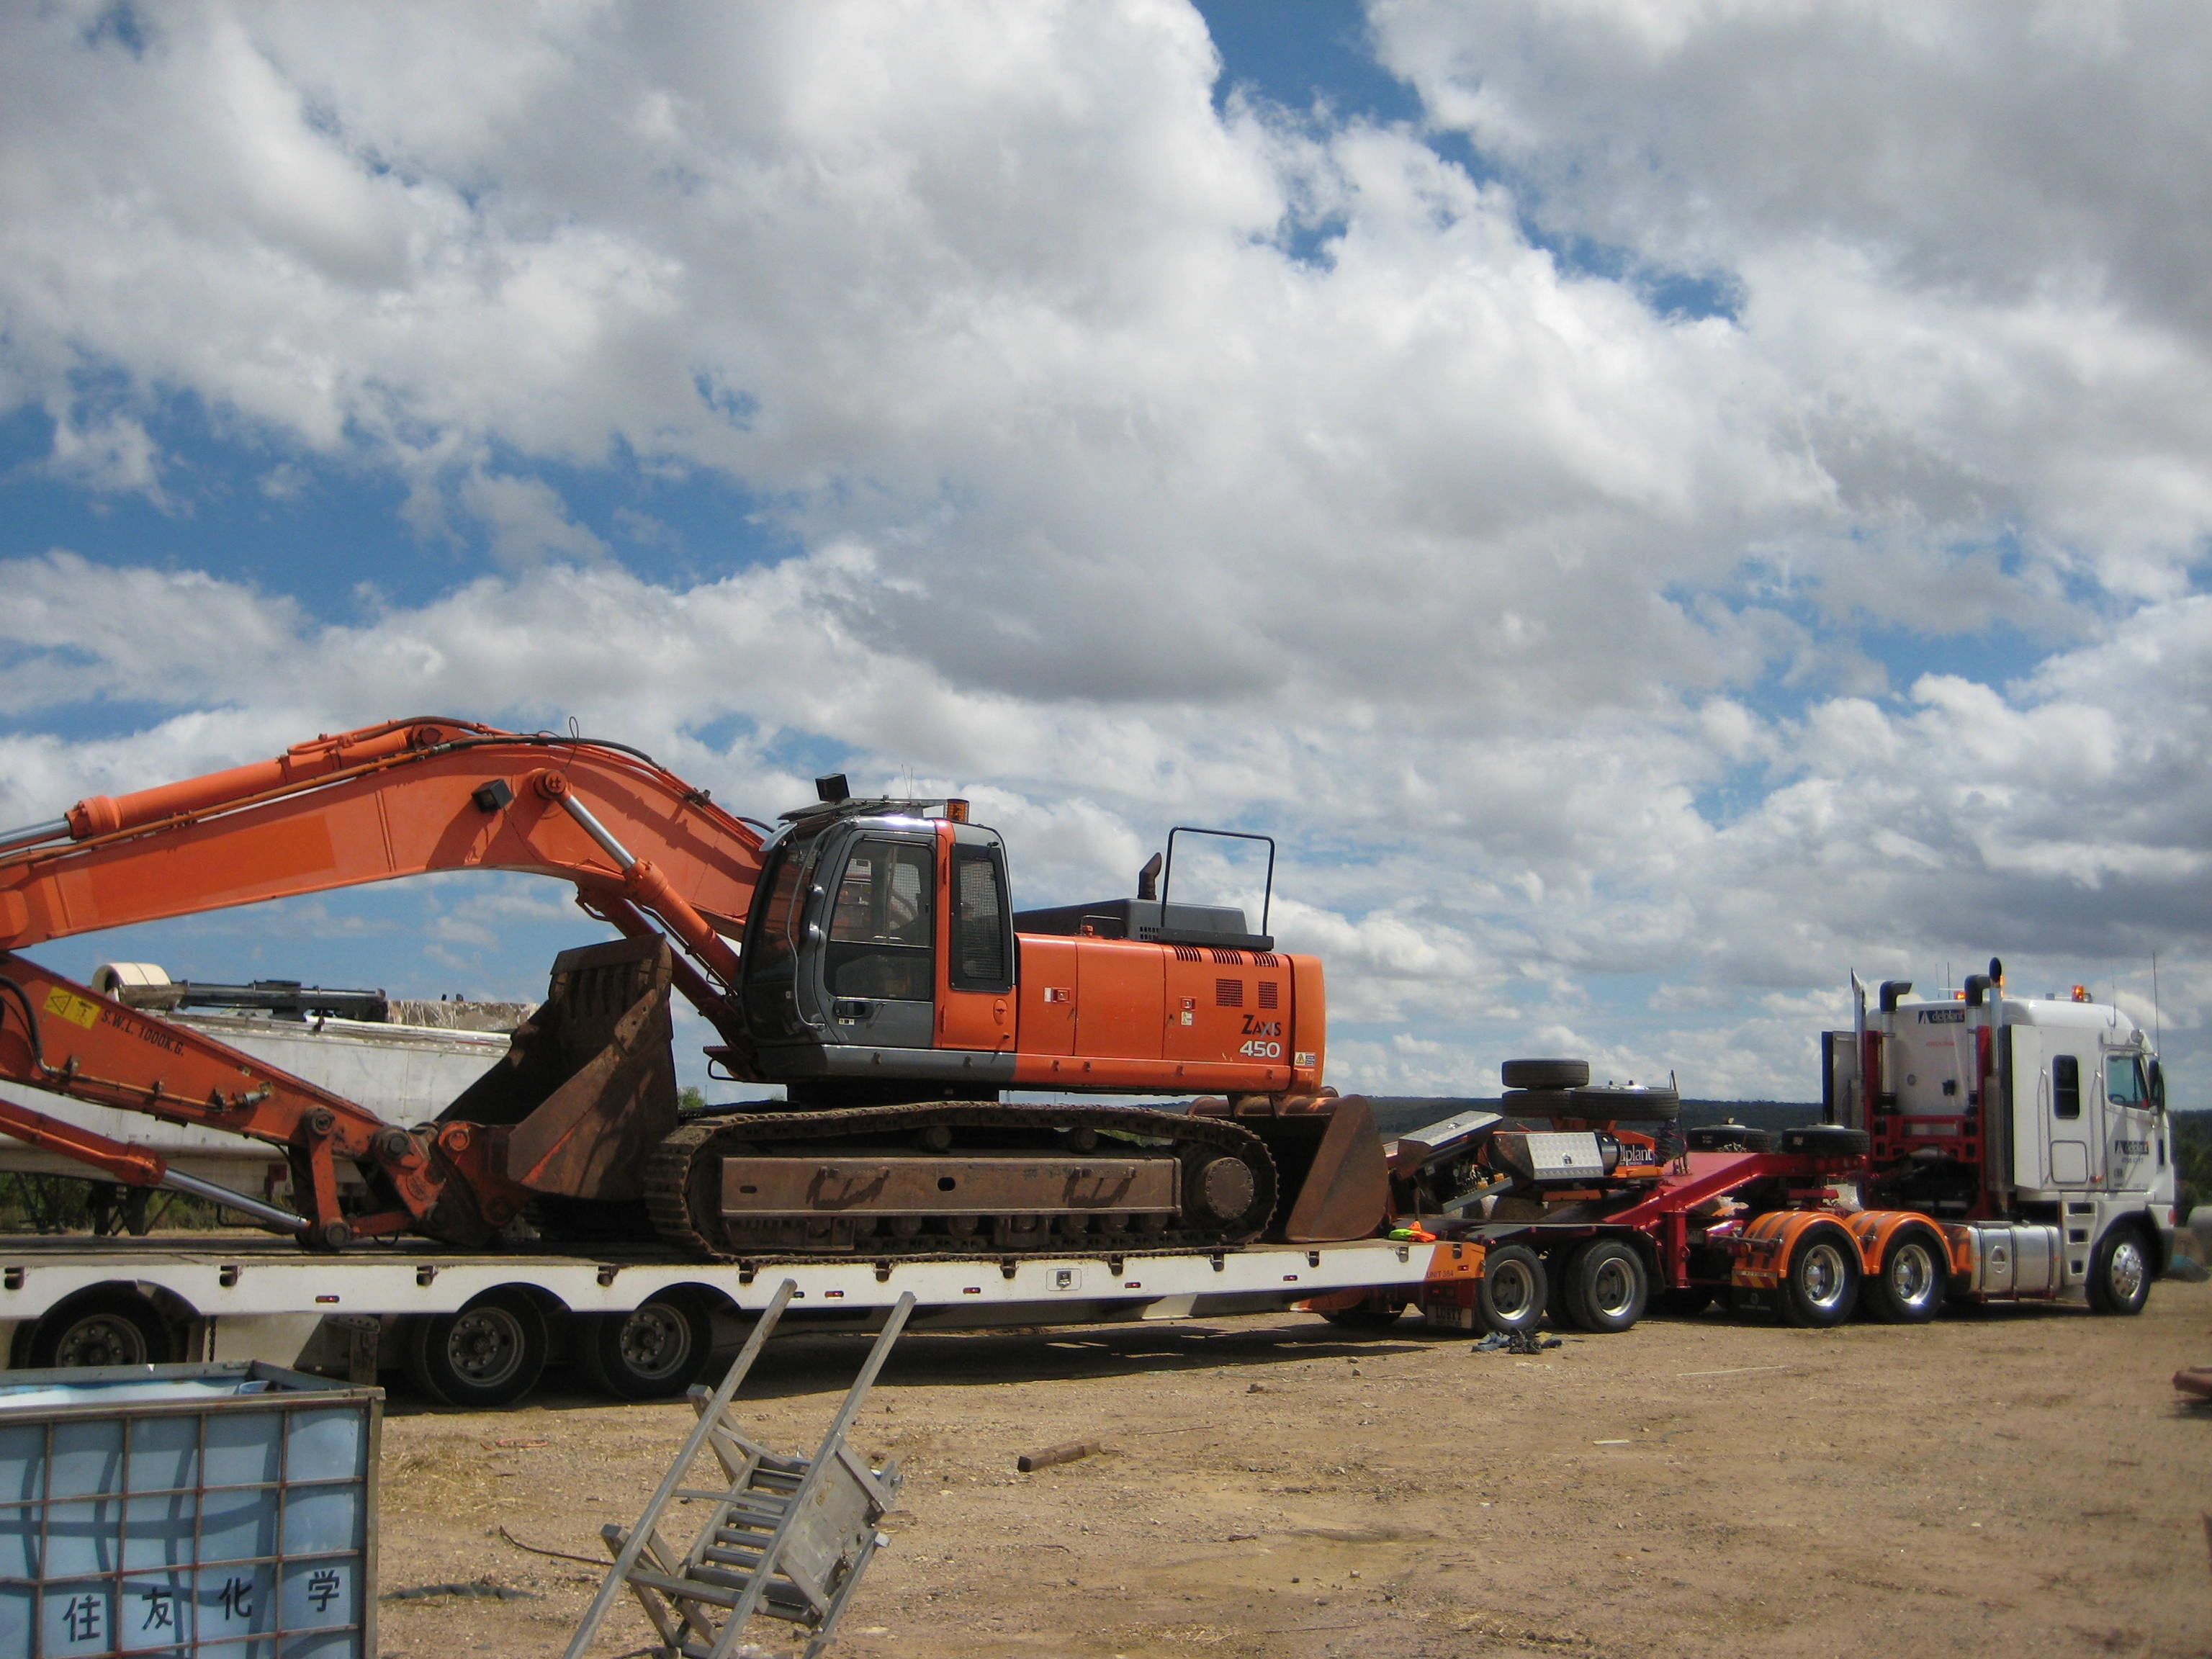 40t - 49t Excavator for hire - Hunter Bros Earth Movers Pty Ltd